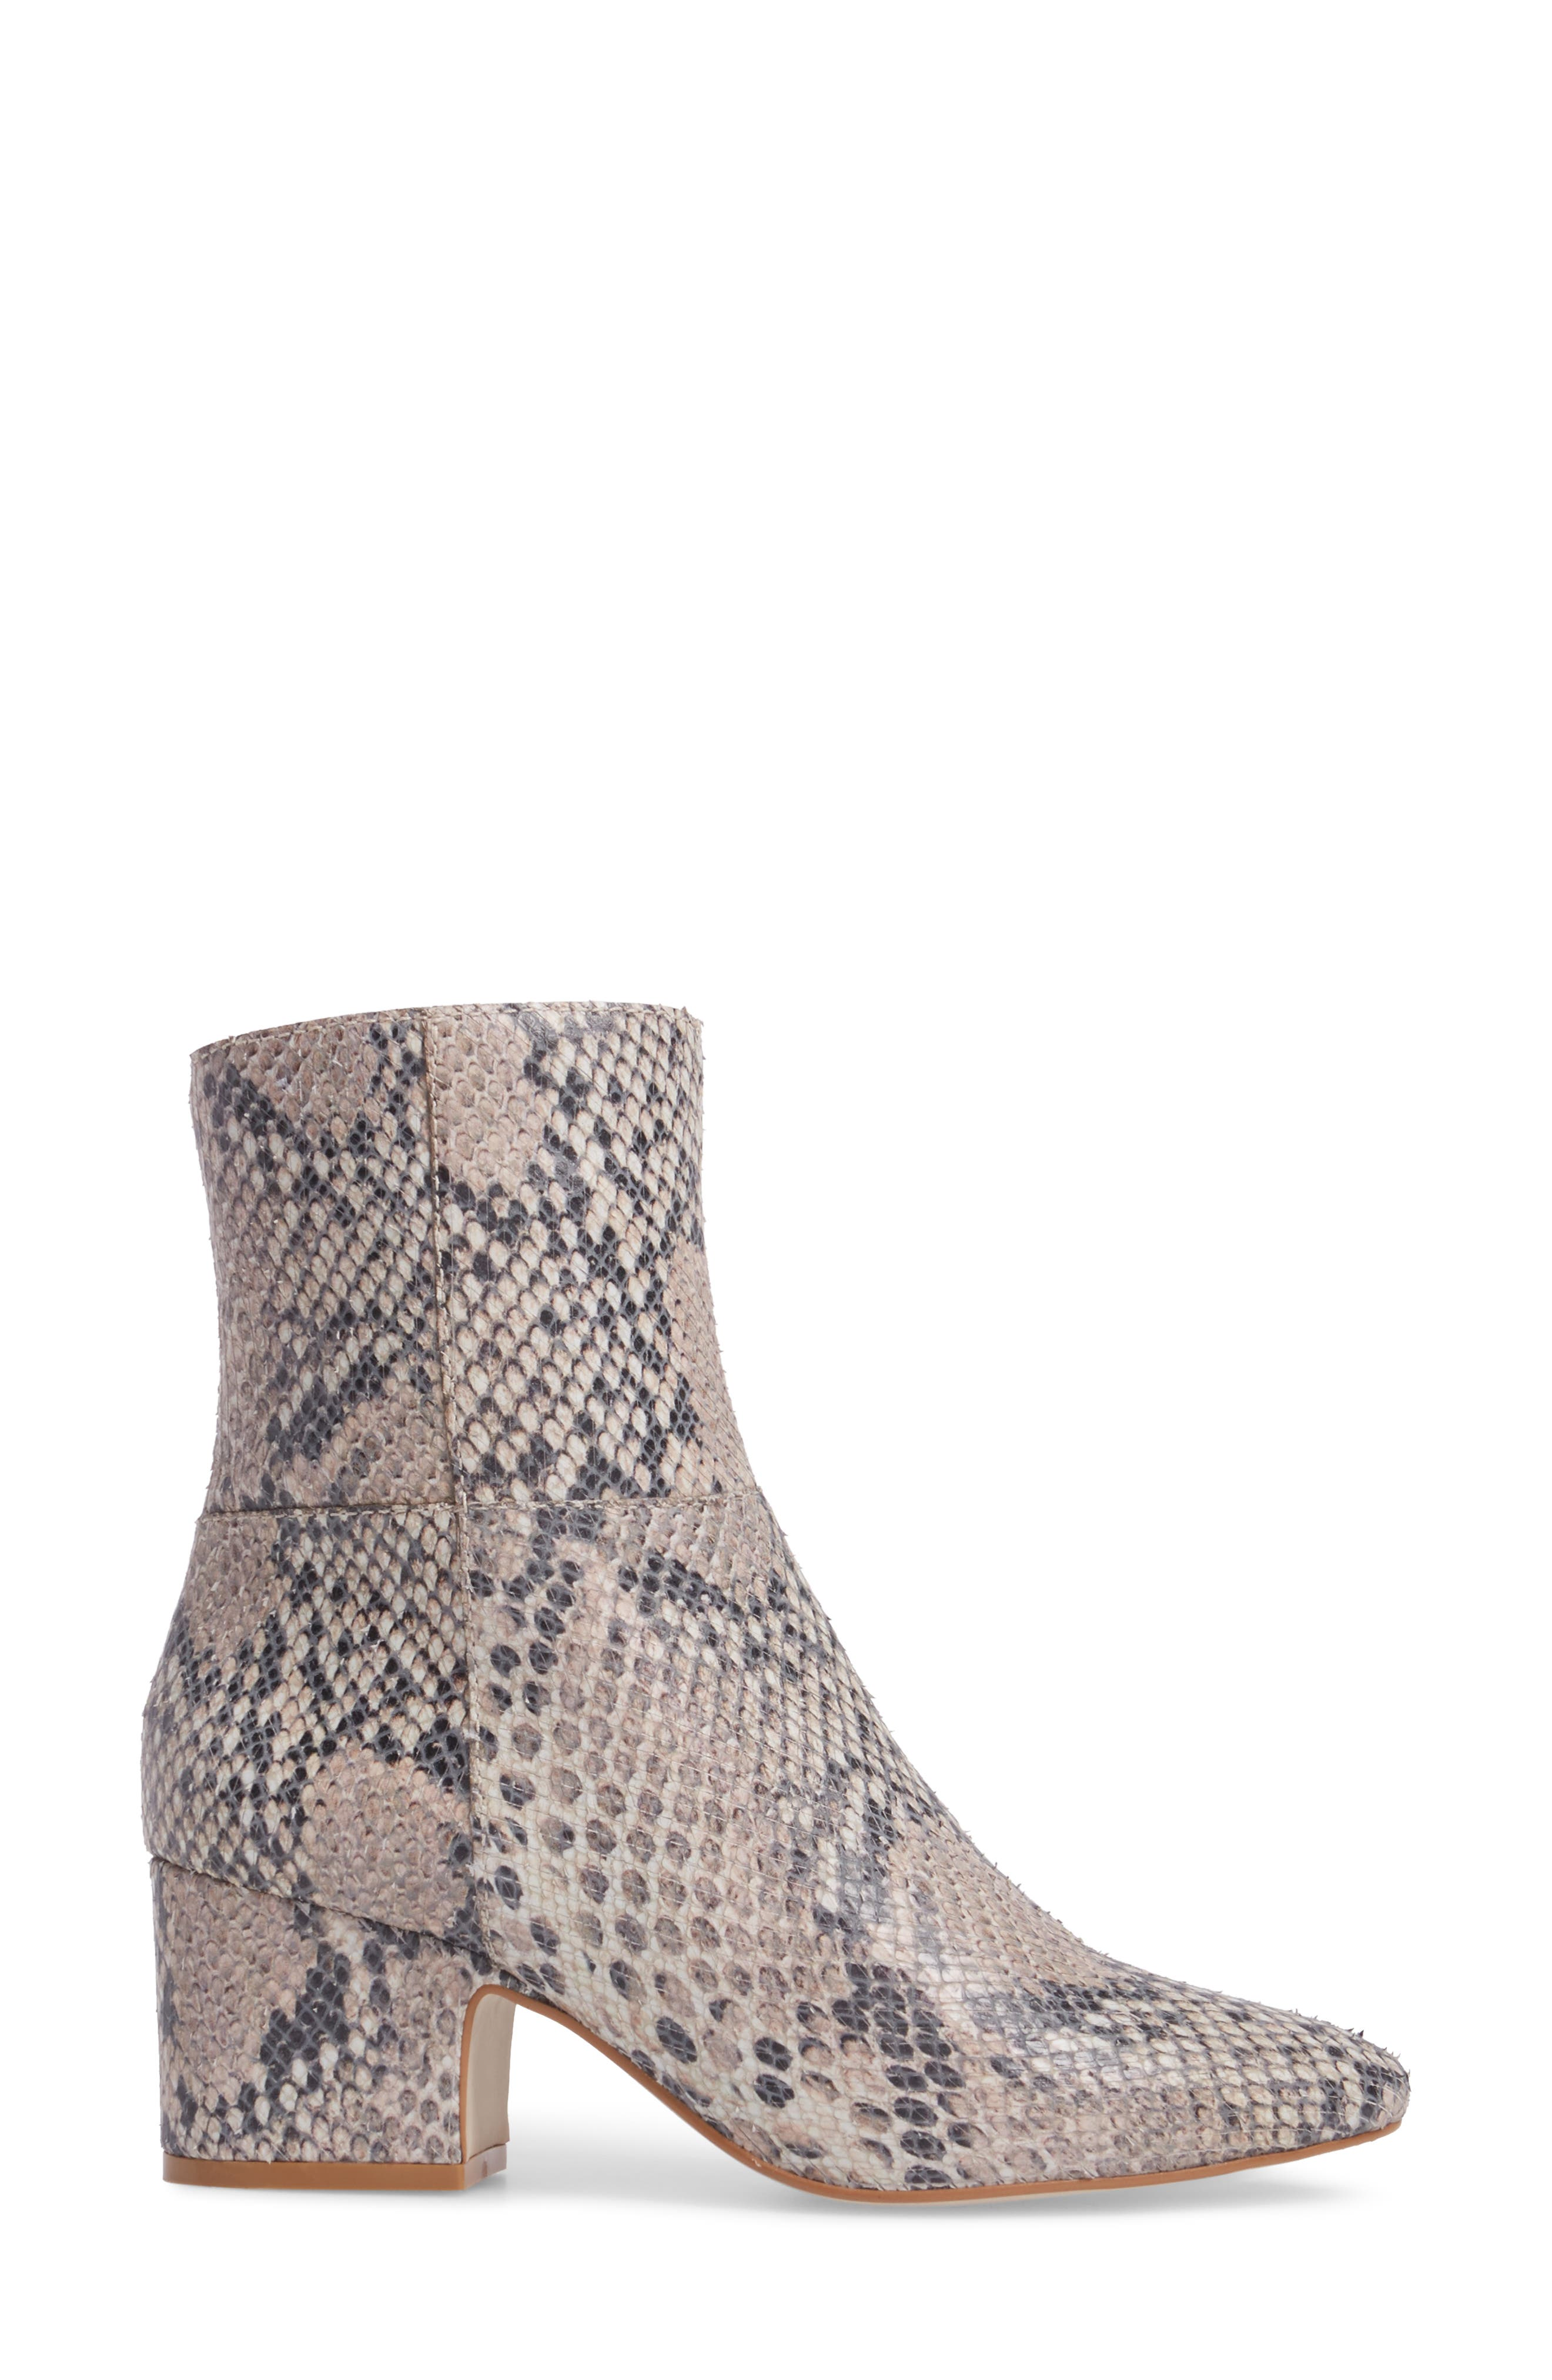 At Ease Genuine Calf Hair Bootie,                             Alternate thumbnail 3, color,                             NATURAL SNAKE LEATHER